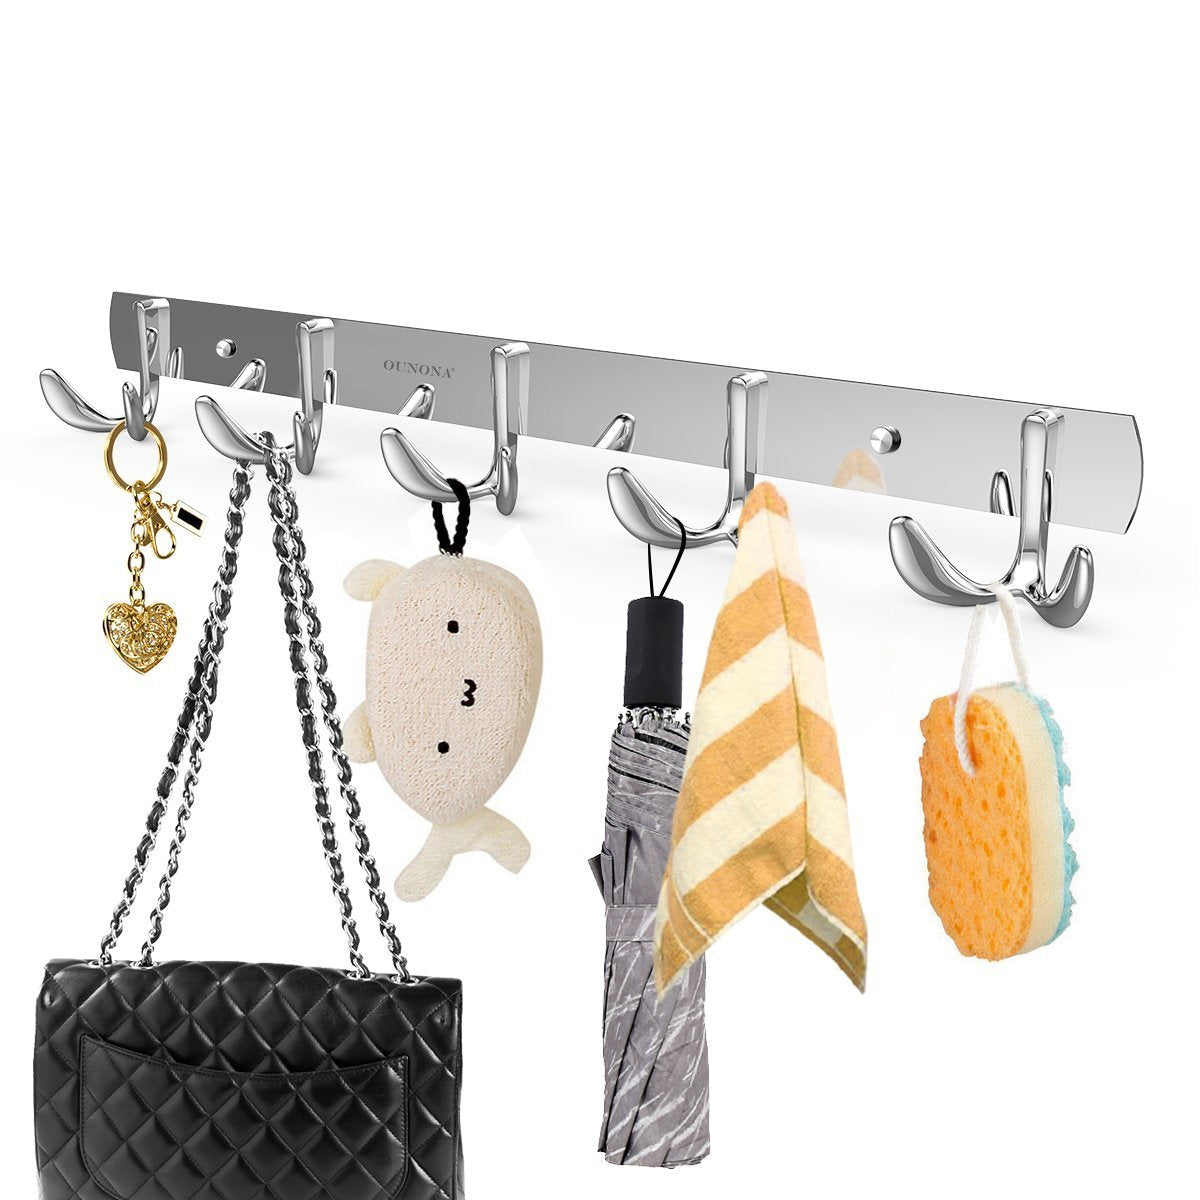 Select nice ounona wall coat rack coat hooks wall mounted stainless steel hook rack for clothes 10 hooks